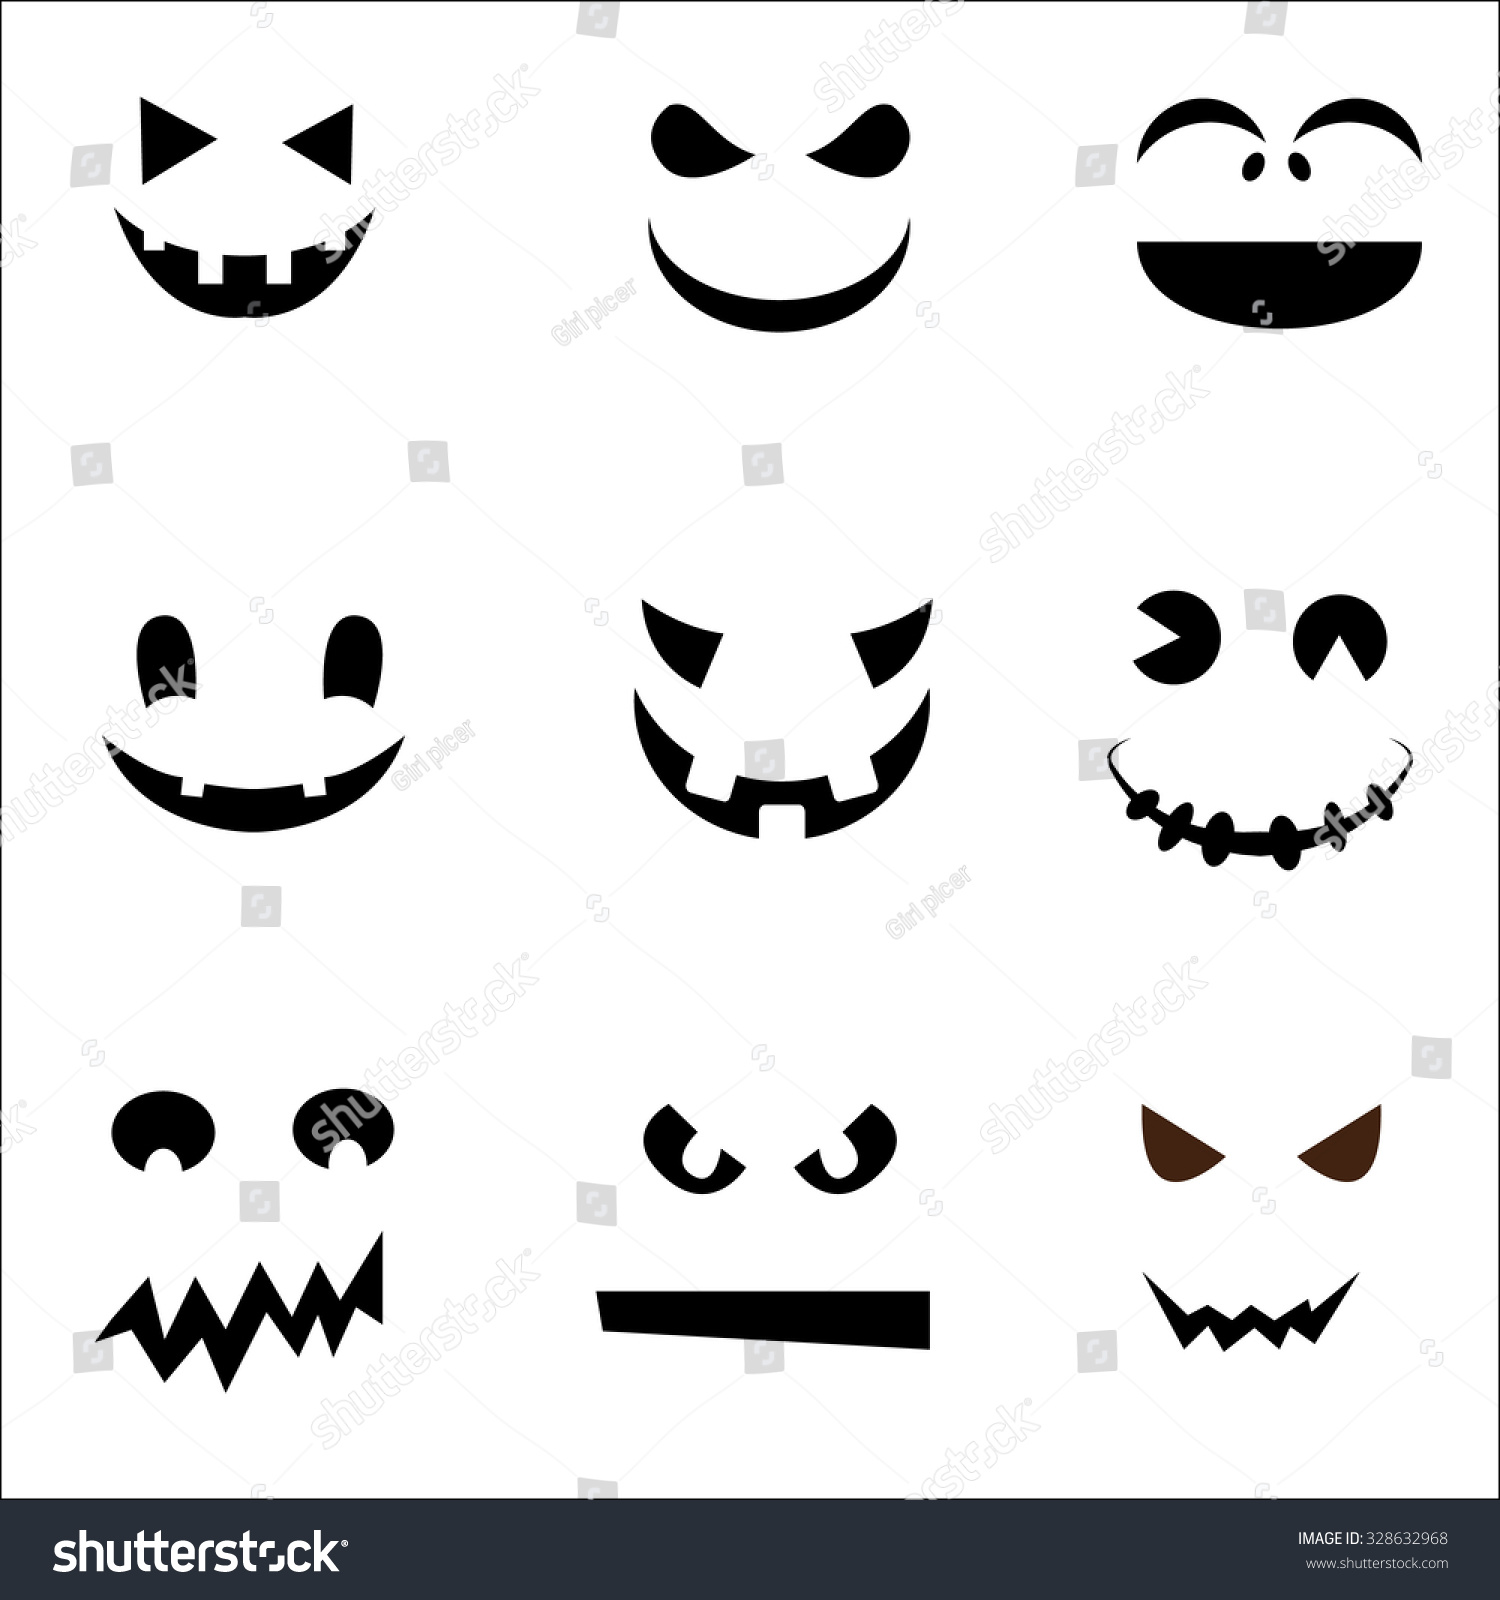 Free Printable Face Painting Stencils For Kids